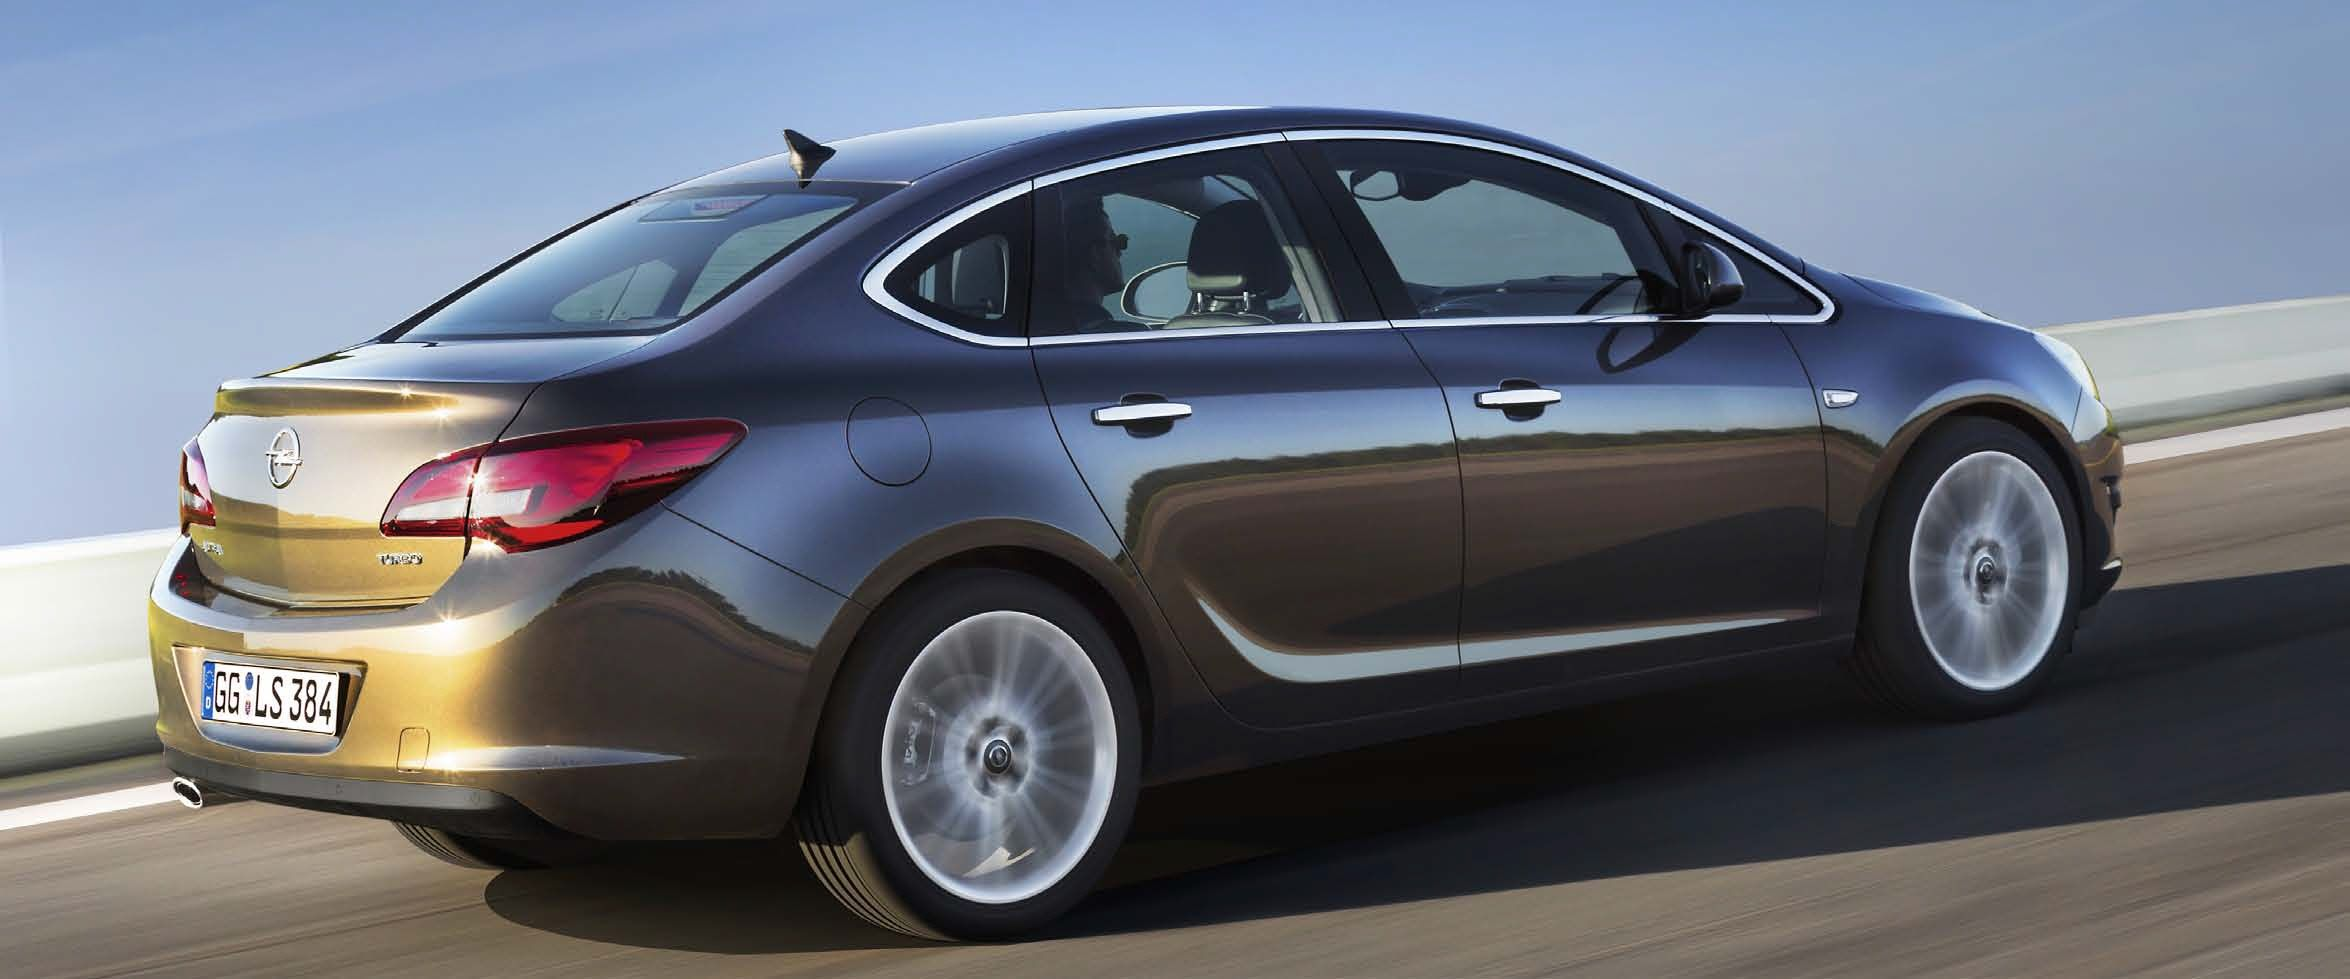 Opel is all set to take the 2012 moscow auto salon by storm with its newest astra sedan model the 2013 opel astra sedan is a valuable addition to the astra